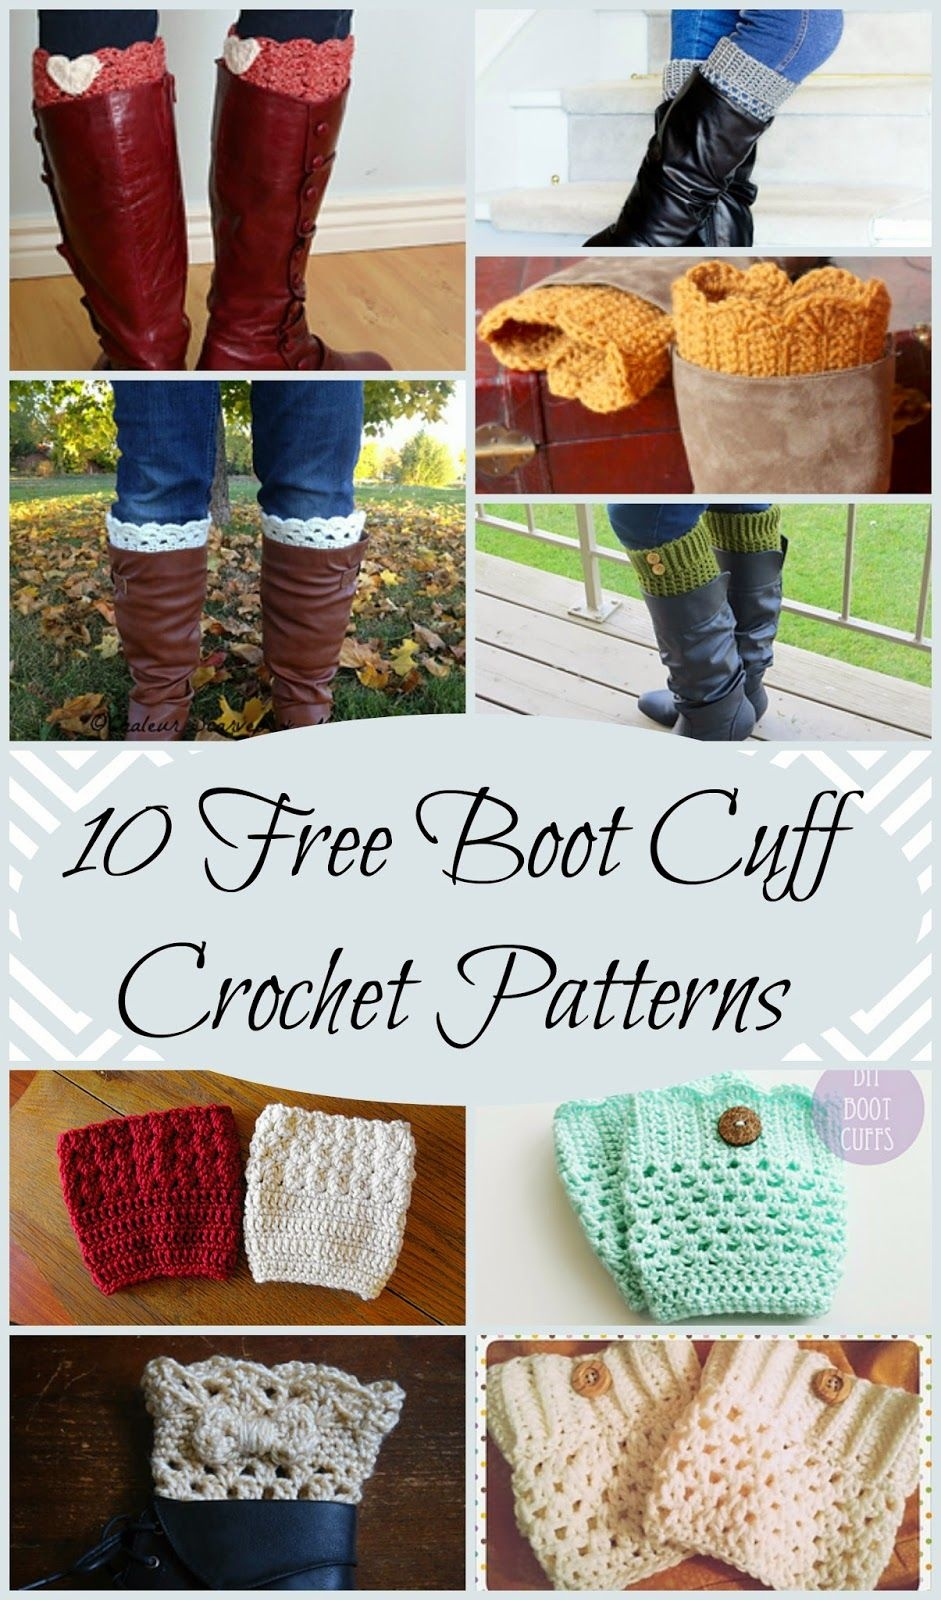 10 Free Boot Cuff Crochet Patterns Perfect For A Quick And Easy - Free Printable Crochet Patterns For Boot Cuffs